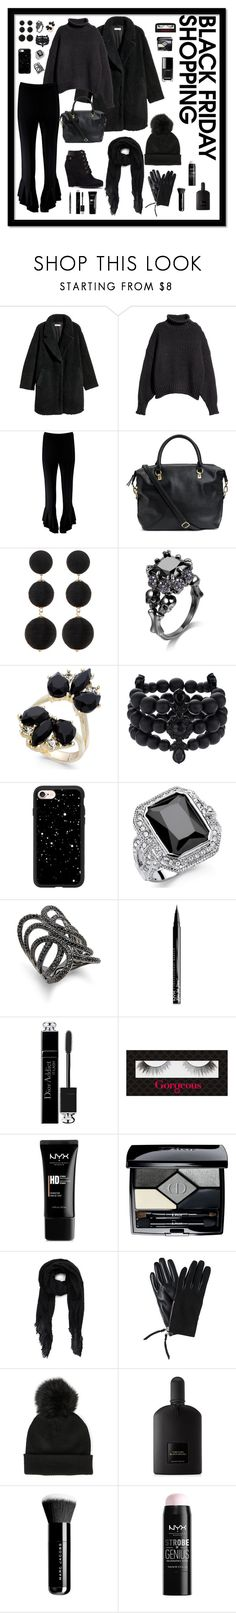 """Black Friday In All Black"" by fireglam ❤ liked on Polyvore featuring H&M, Boohoo, Cara, INC International Concepts, Simply Vera, Casetify, Palm Beach Jewelry, Blanc Noir, NYX and Christian Dior"